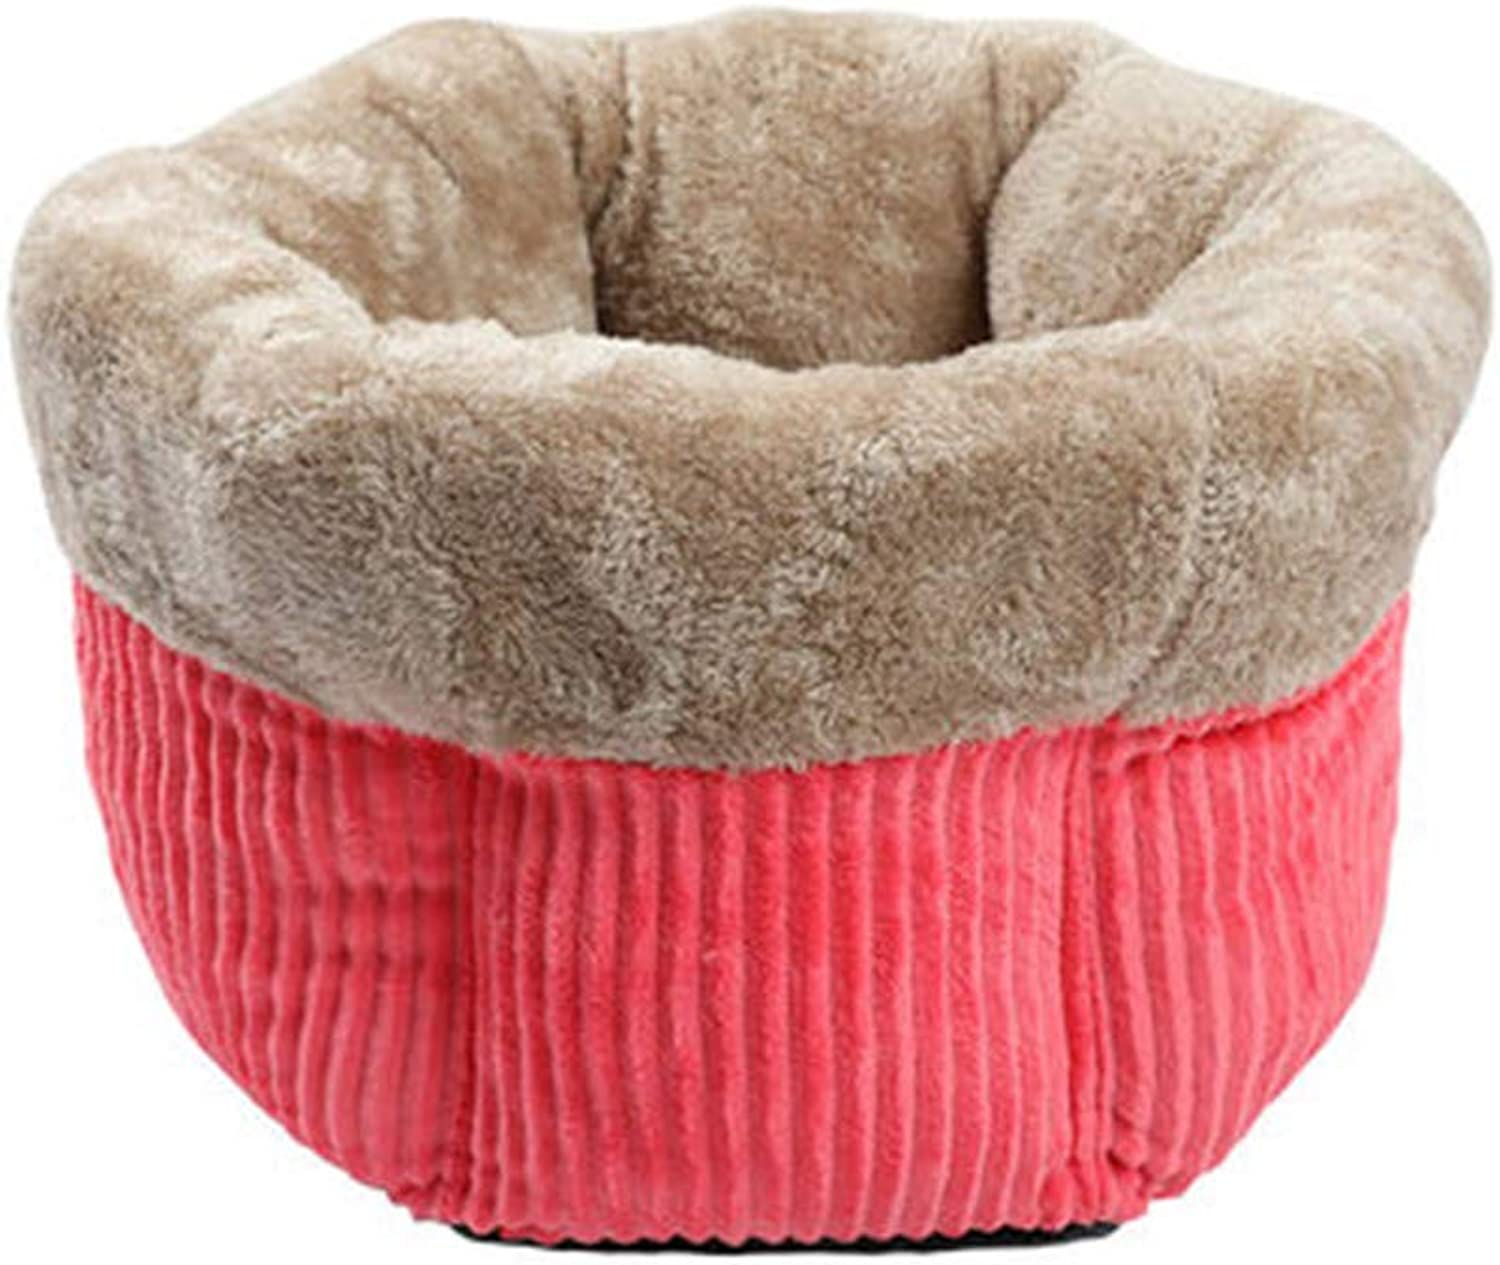 Cuddle Cup, Cozy, Comfortable Cat and Dog House Bed, HighWalls for Improved Sleep